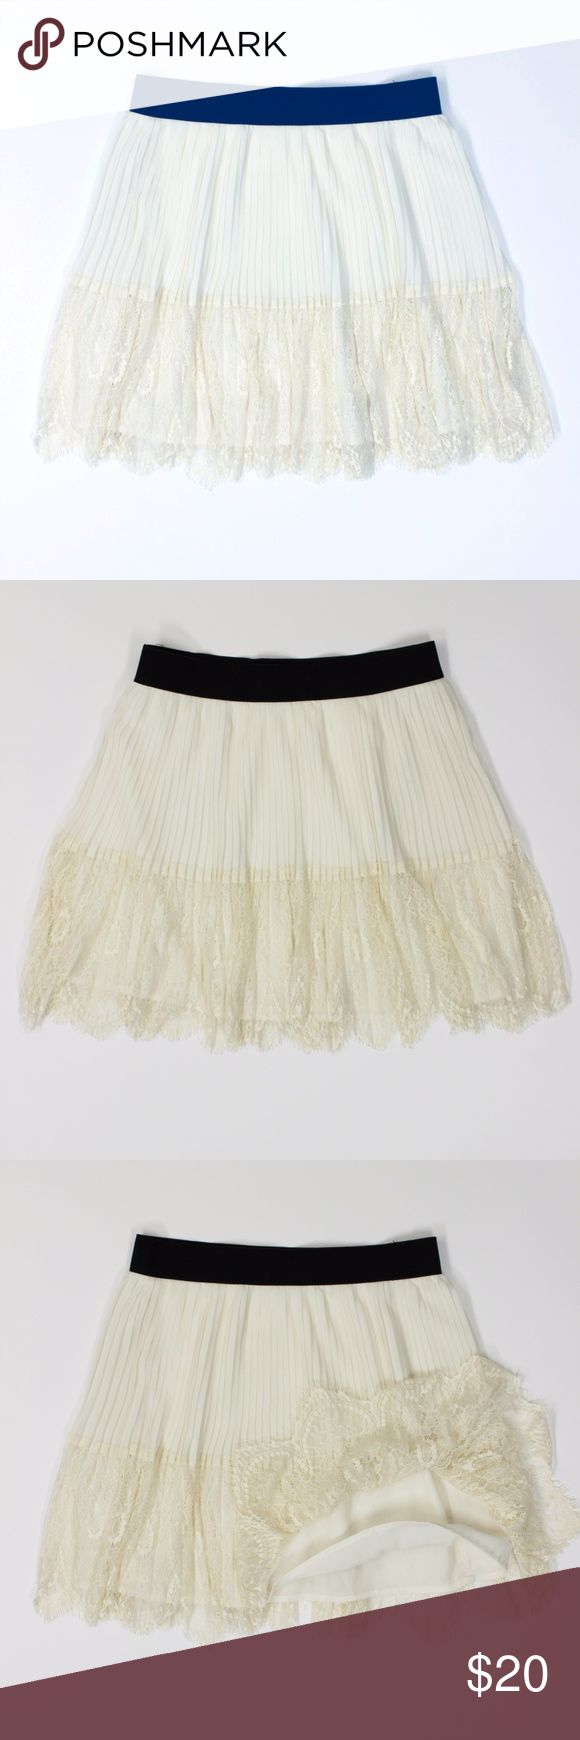 "NWOT Tier Knife Pleats Lace Ivory Flirty Skirt 721 Forever 21 Women's Ivory Knife Pleated A-Line Sheer Tiered Skirt, Lined, Elastic Waistband, Sheer Pleats, Soft Lace Size: S Small  Length: 16.25""  Condition: New without Tags. Excellent! Comes from a pet and smoke free environment!  Please review pictures and contact me if you have any questions. Color: Ivory Pattern: Lace Country: China Care: Dry Clean WT: 0.09 CSKU: 721; PC All measurements are approximate and taken laying flat…"